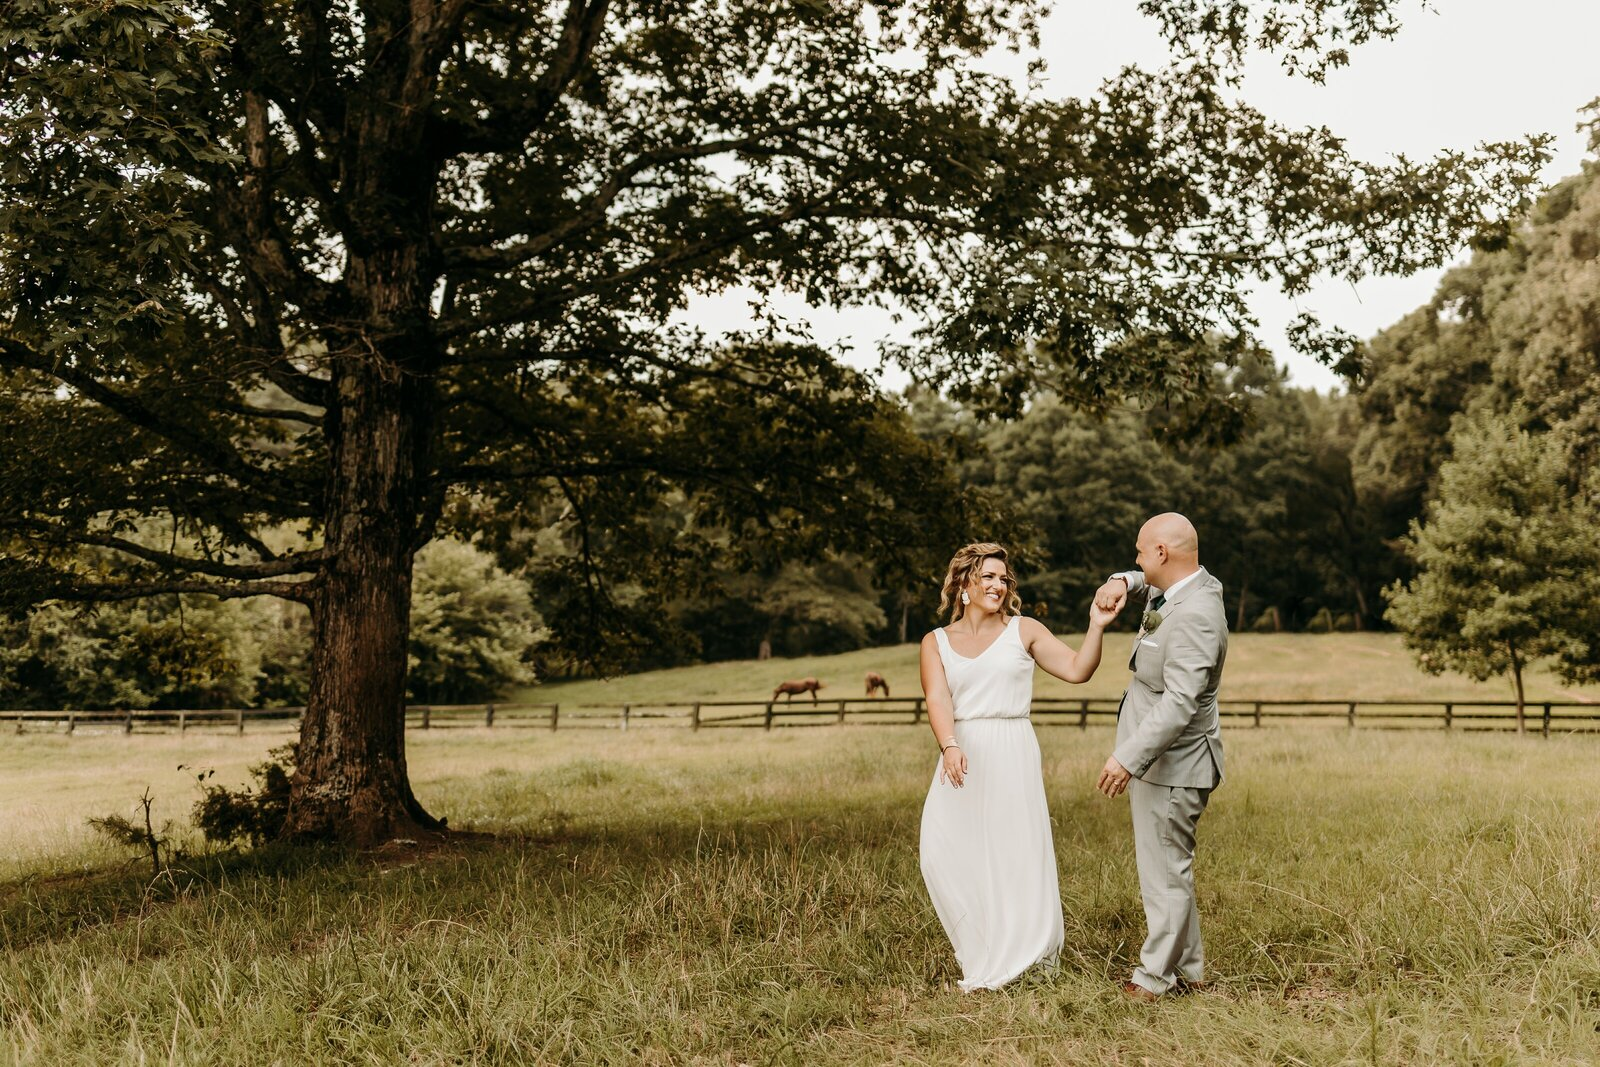 J.Michelle Photography photographs bride and groom